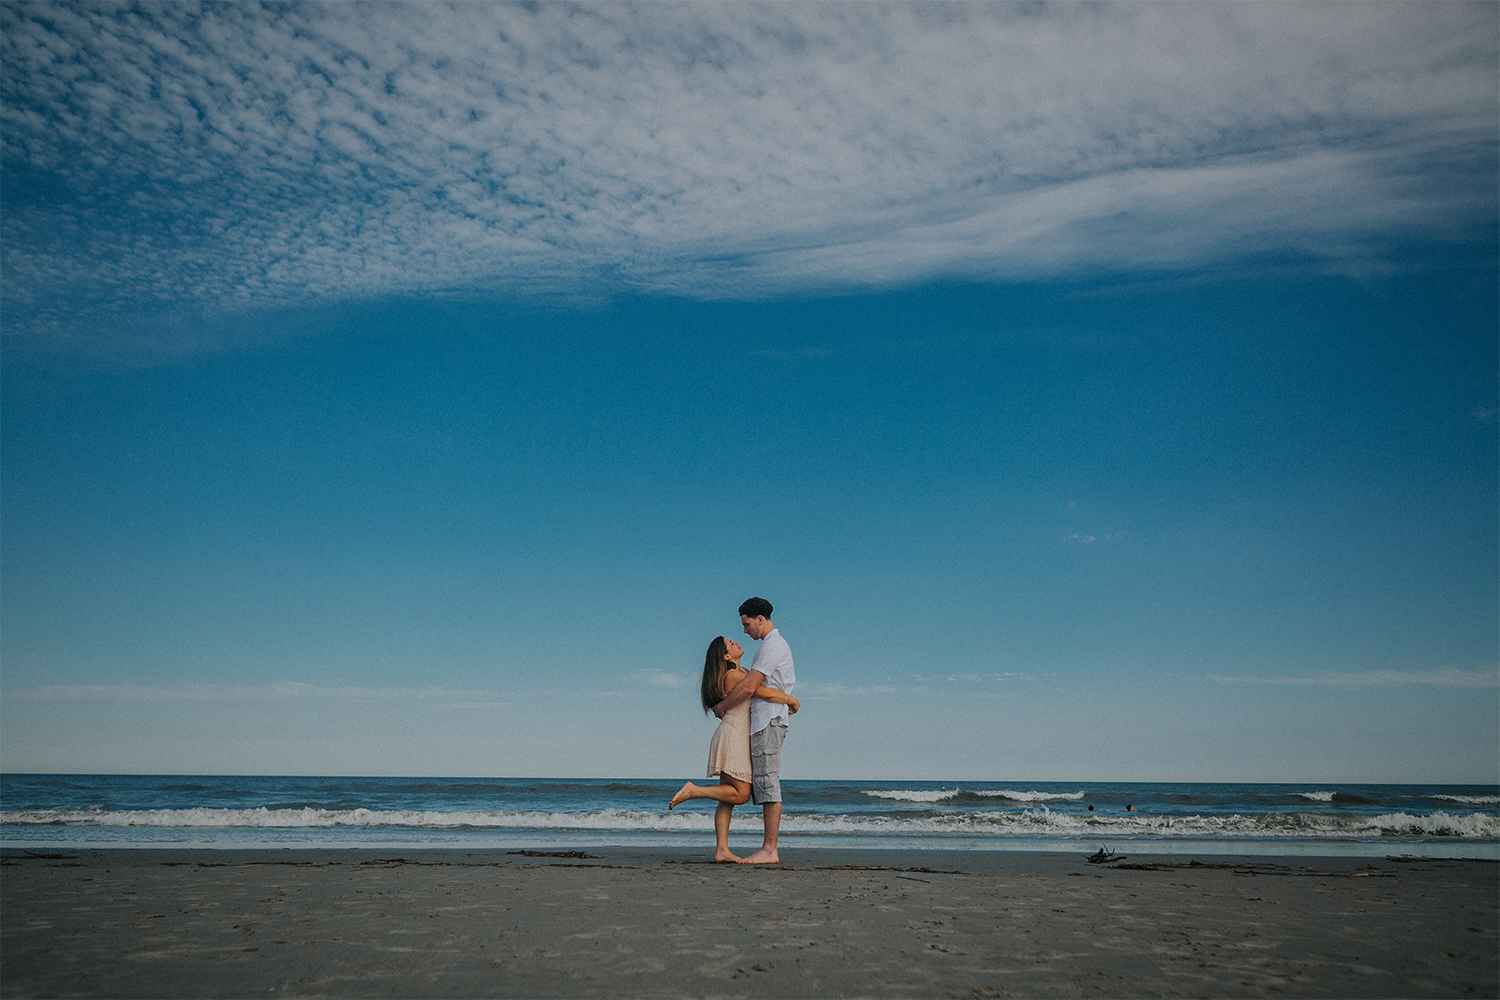 New_Jersey_Wedding_Photography_Engagement_Session_Beach_Session_Couple_021.jpg